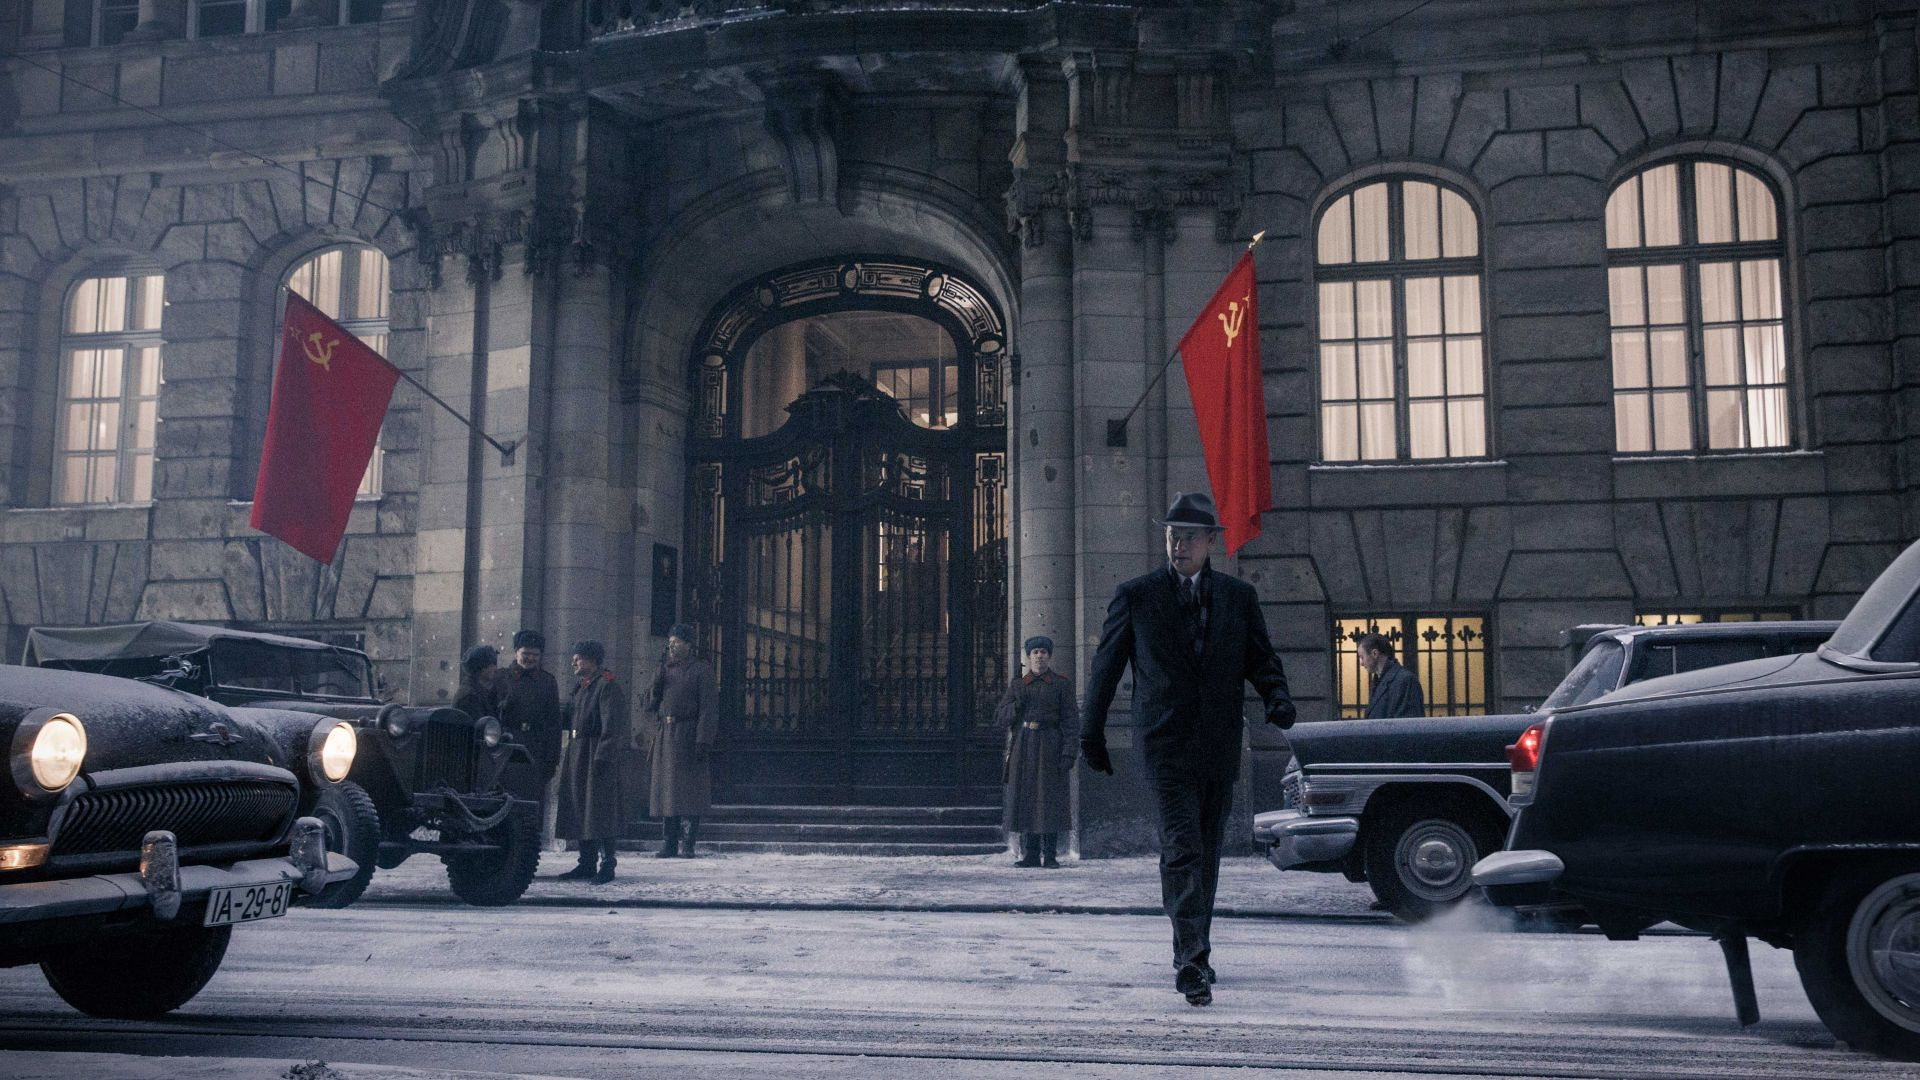 Шпионский мост, Bridge of Spies, movie (horizontal)